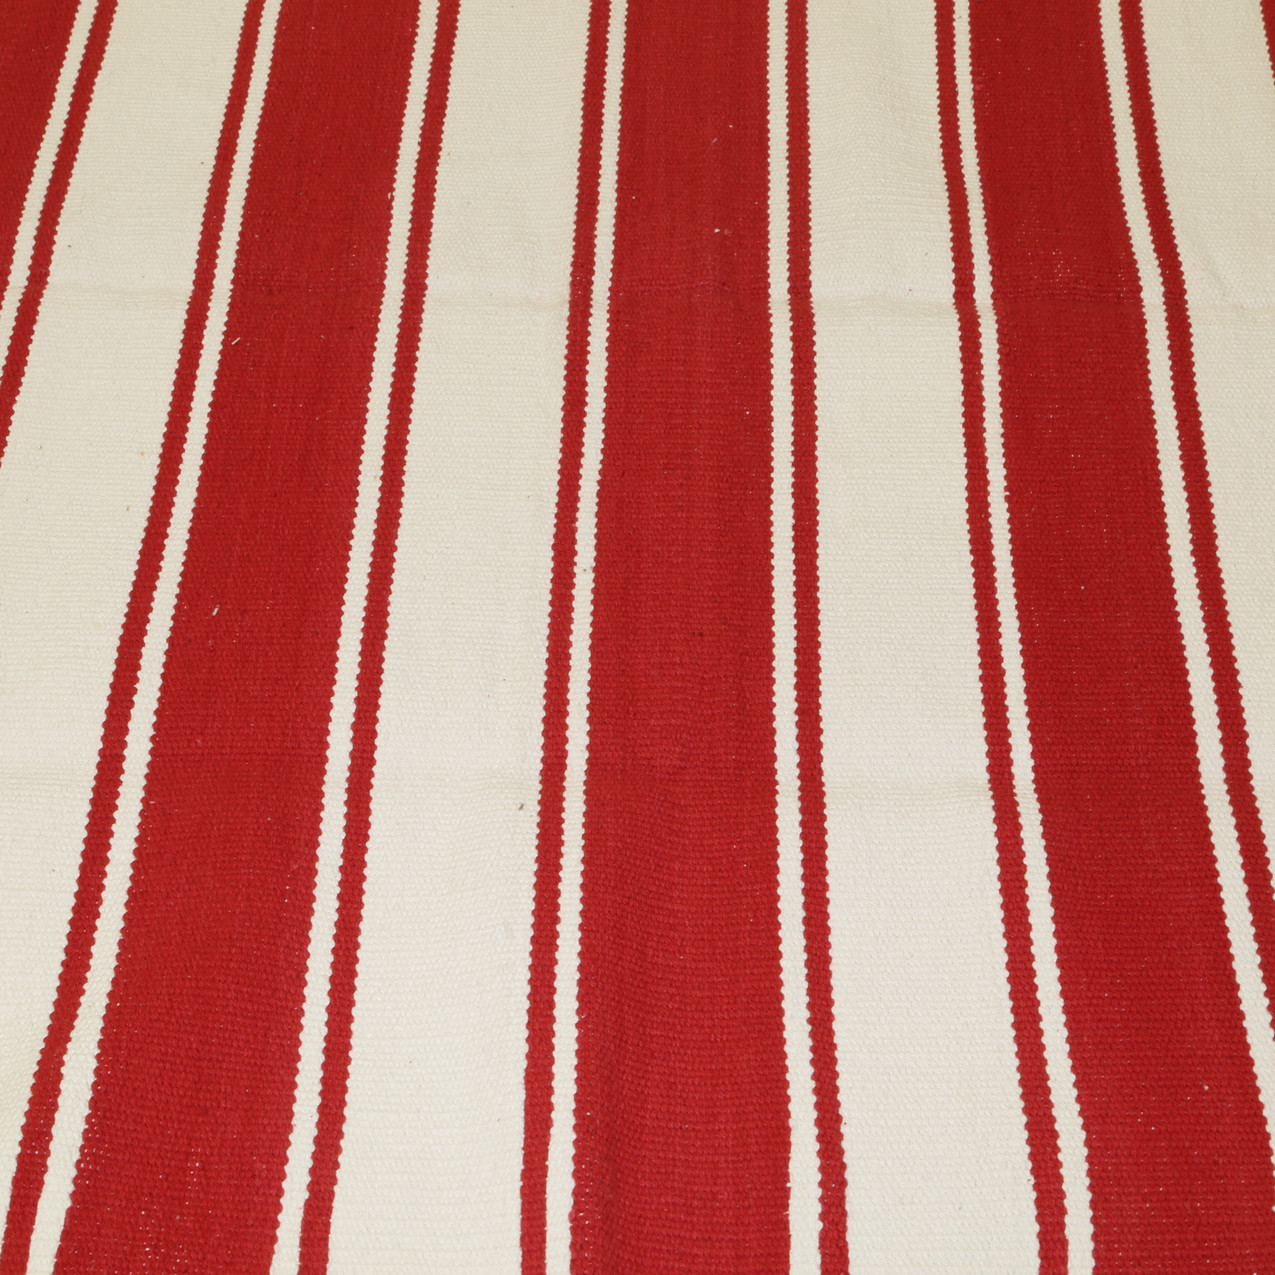 Red and white stripped rug